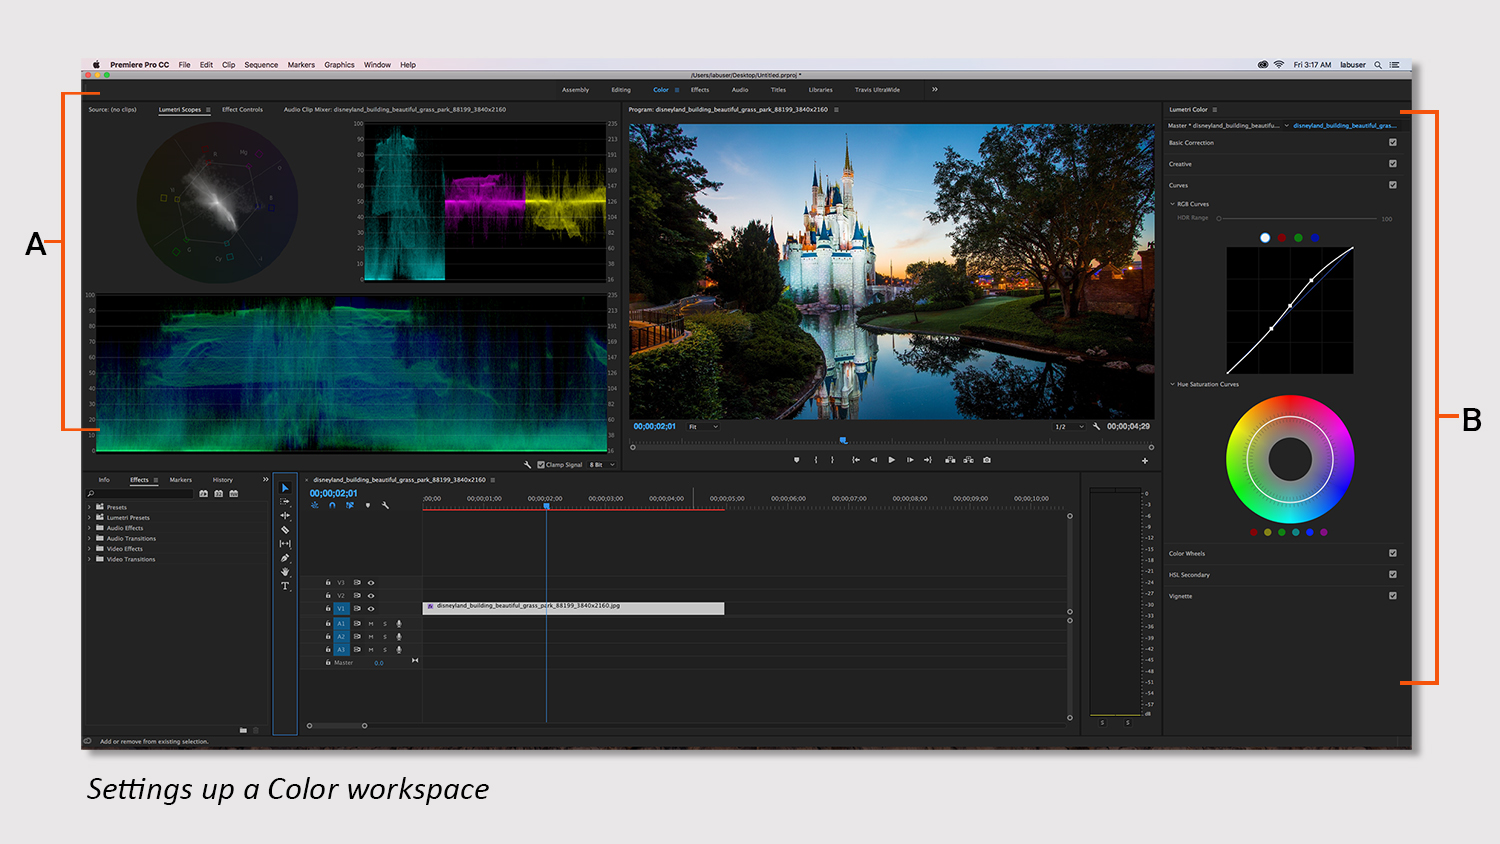 Setting up a Color workspace